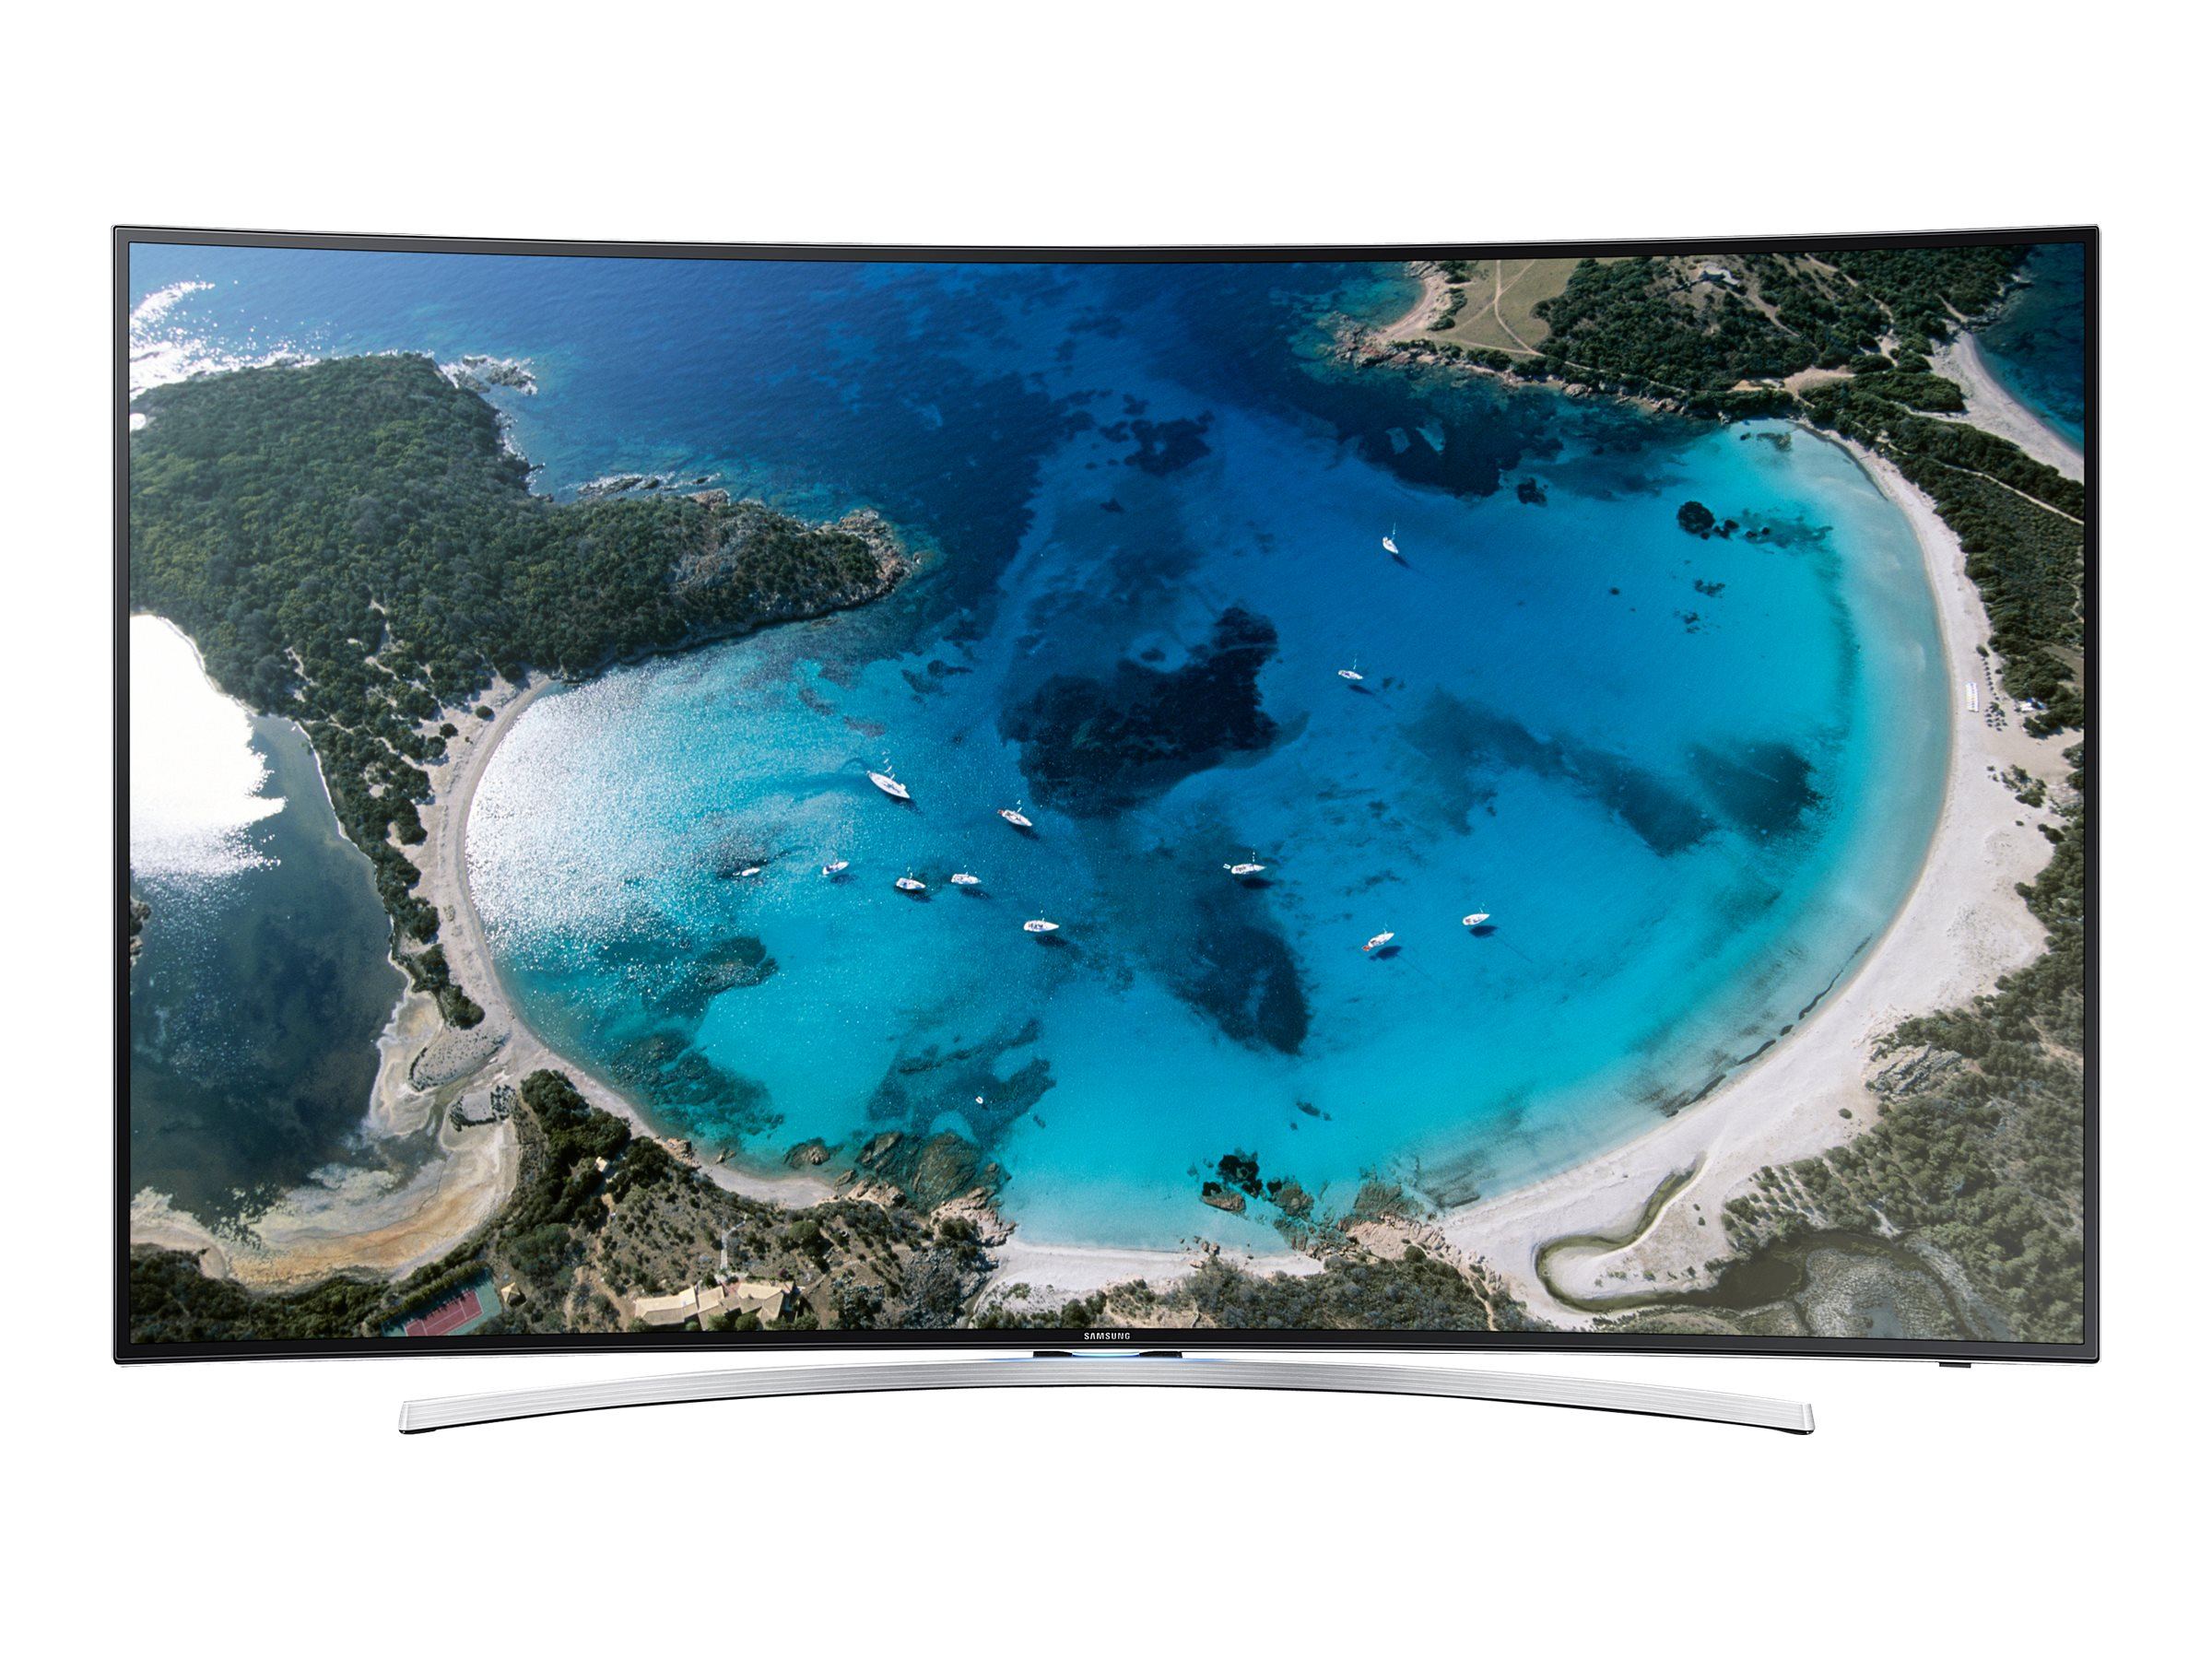 Samsung 55 890 Series Full HD LED-LCD Hospitality TV, Black, HG55NC890VFXZA, 17706827, Televisions - LED-LCD Commercial